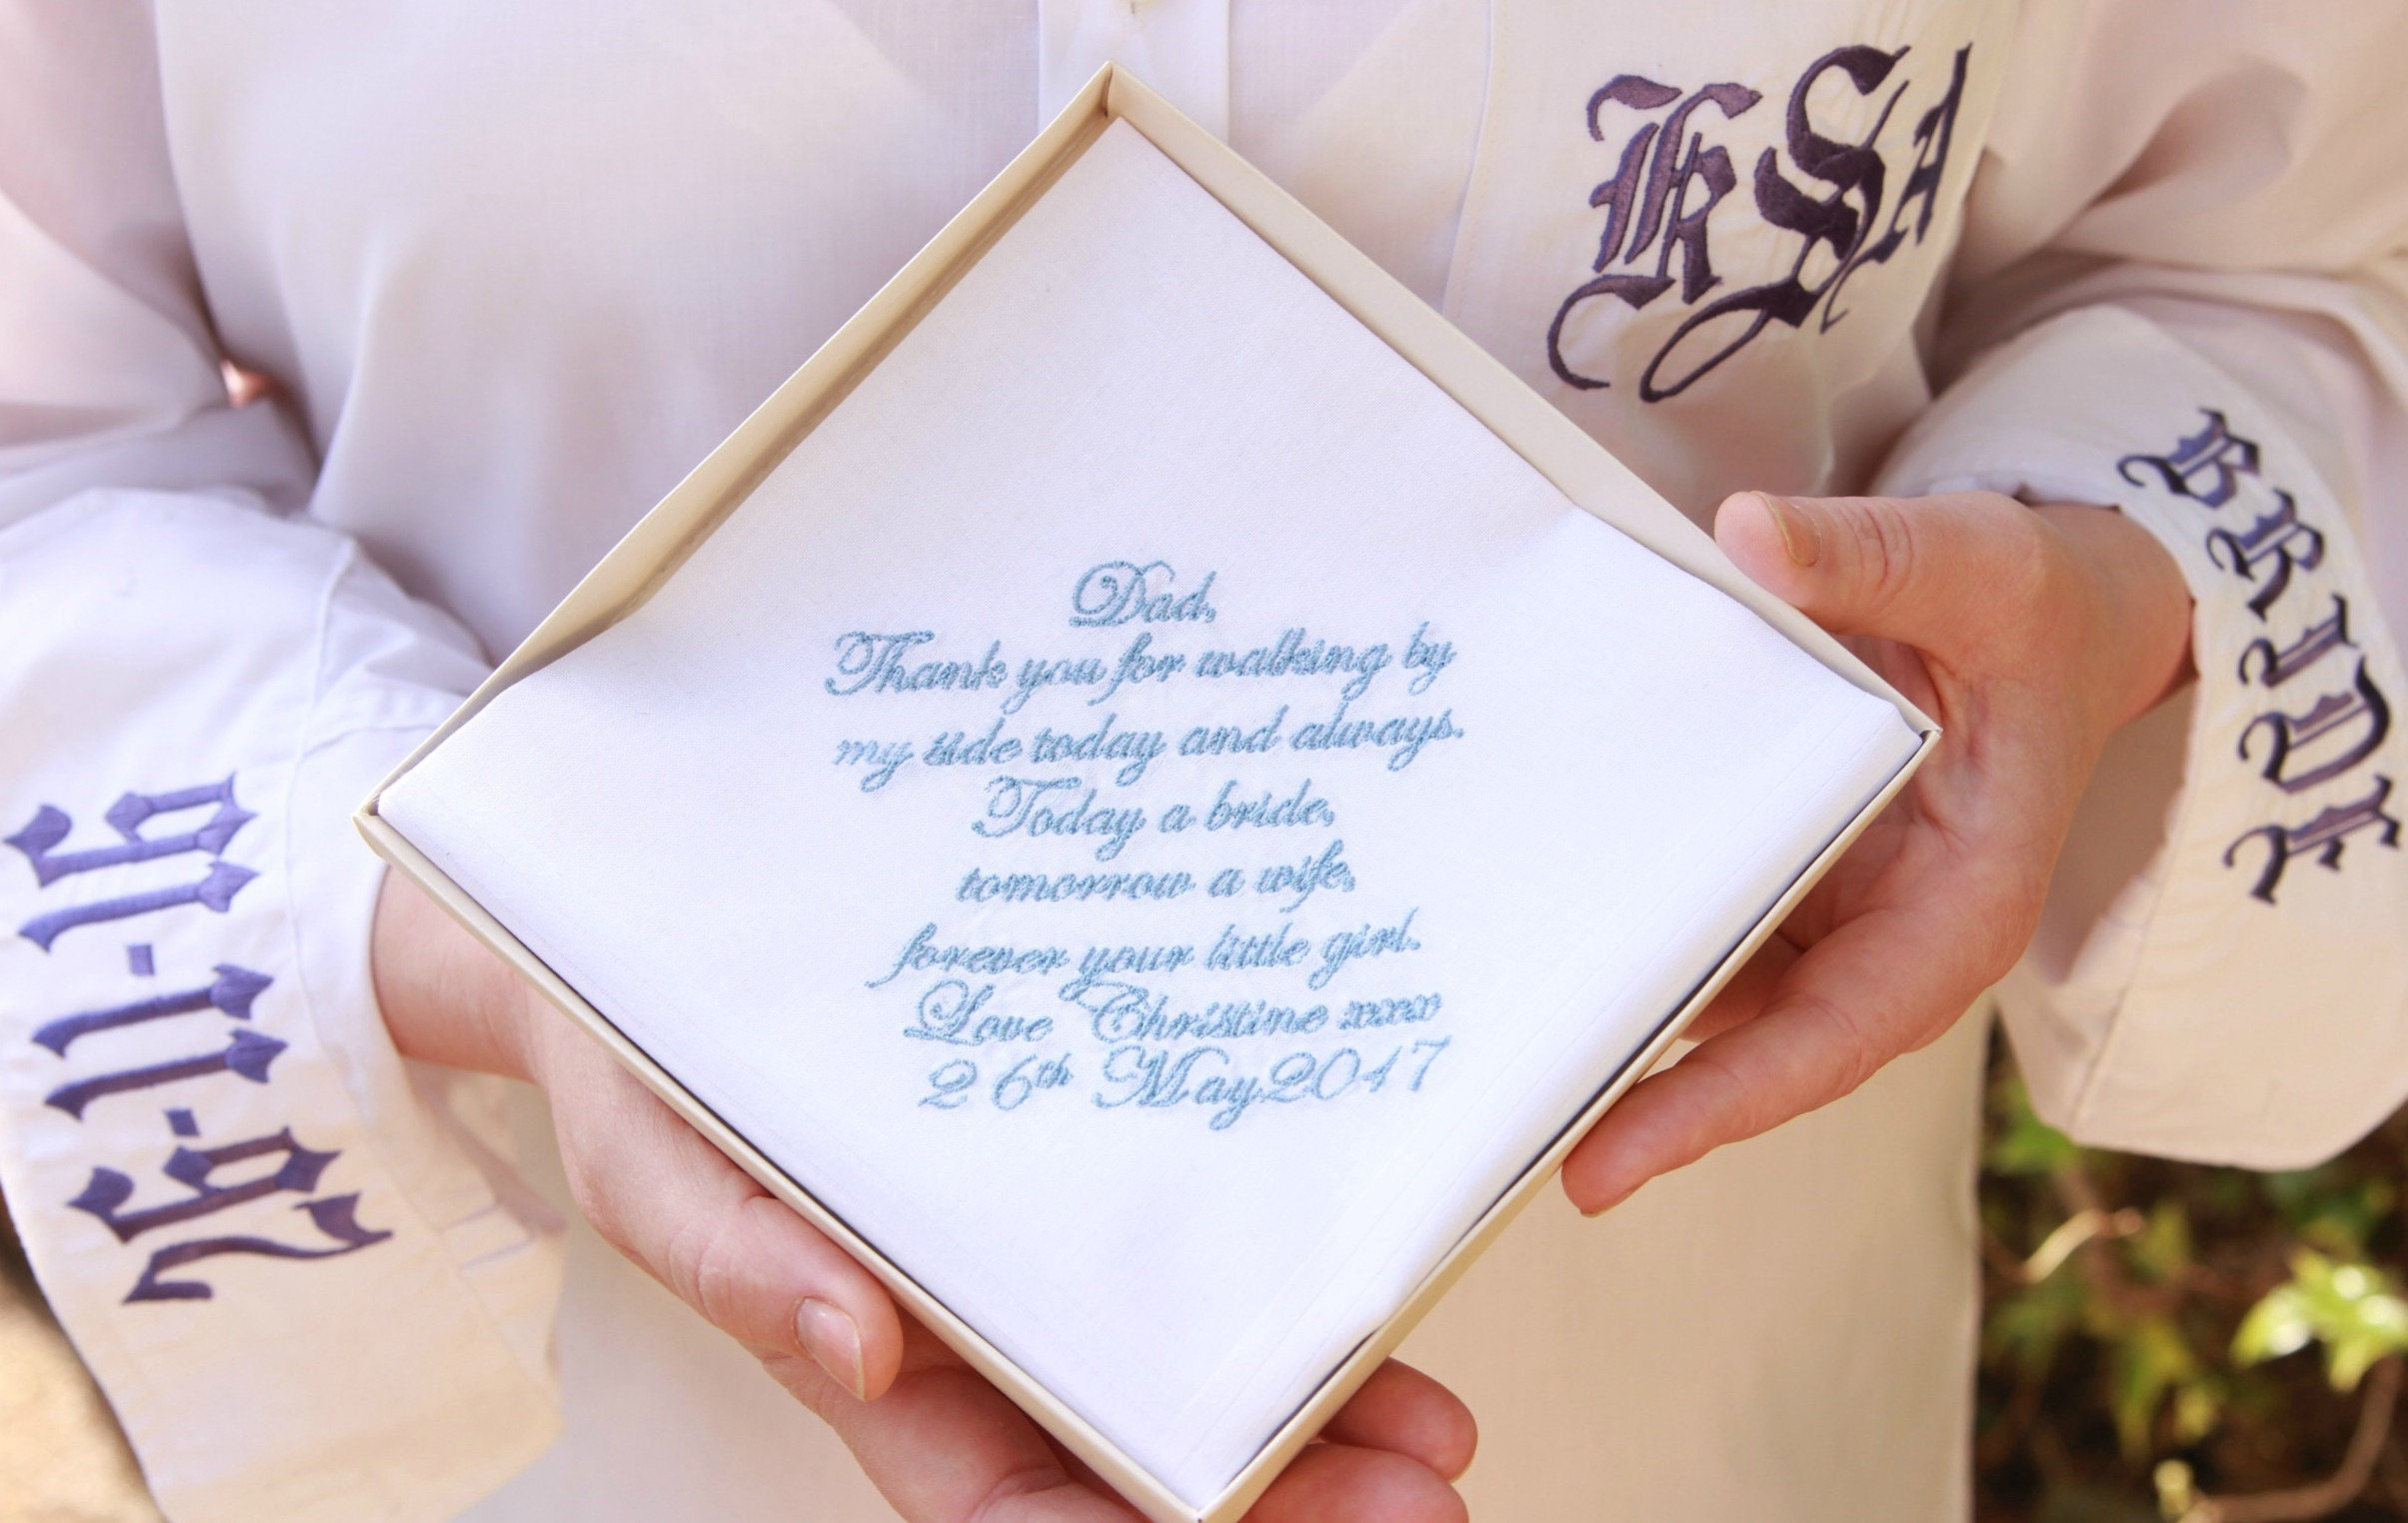 Mens Wedding Gifts From Bride: Personalized Embroidered Men Clothing Wedding Gift Gift